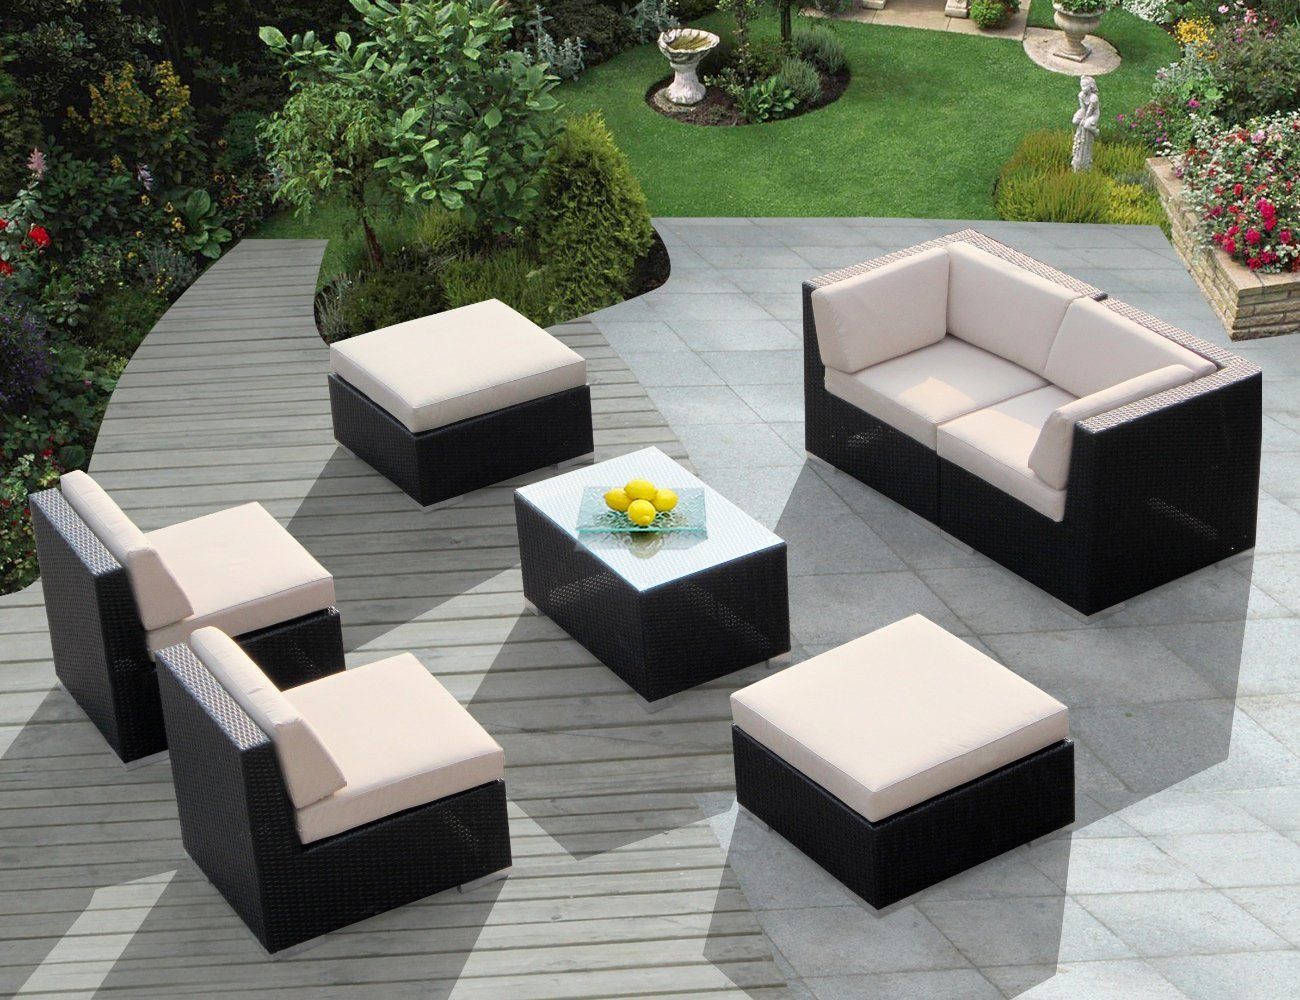 Strathwood outdoor patio furniture buy cheap strathwood for Outdoor porch furniture